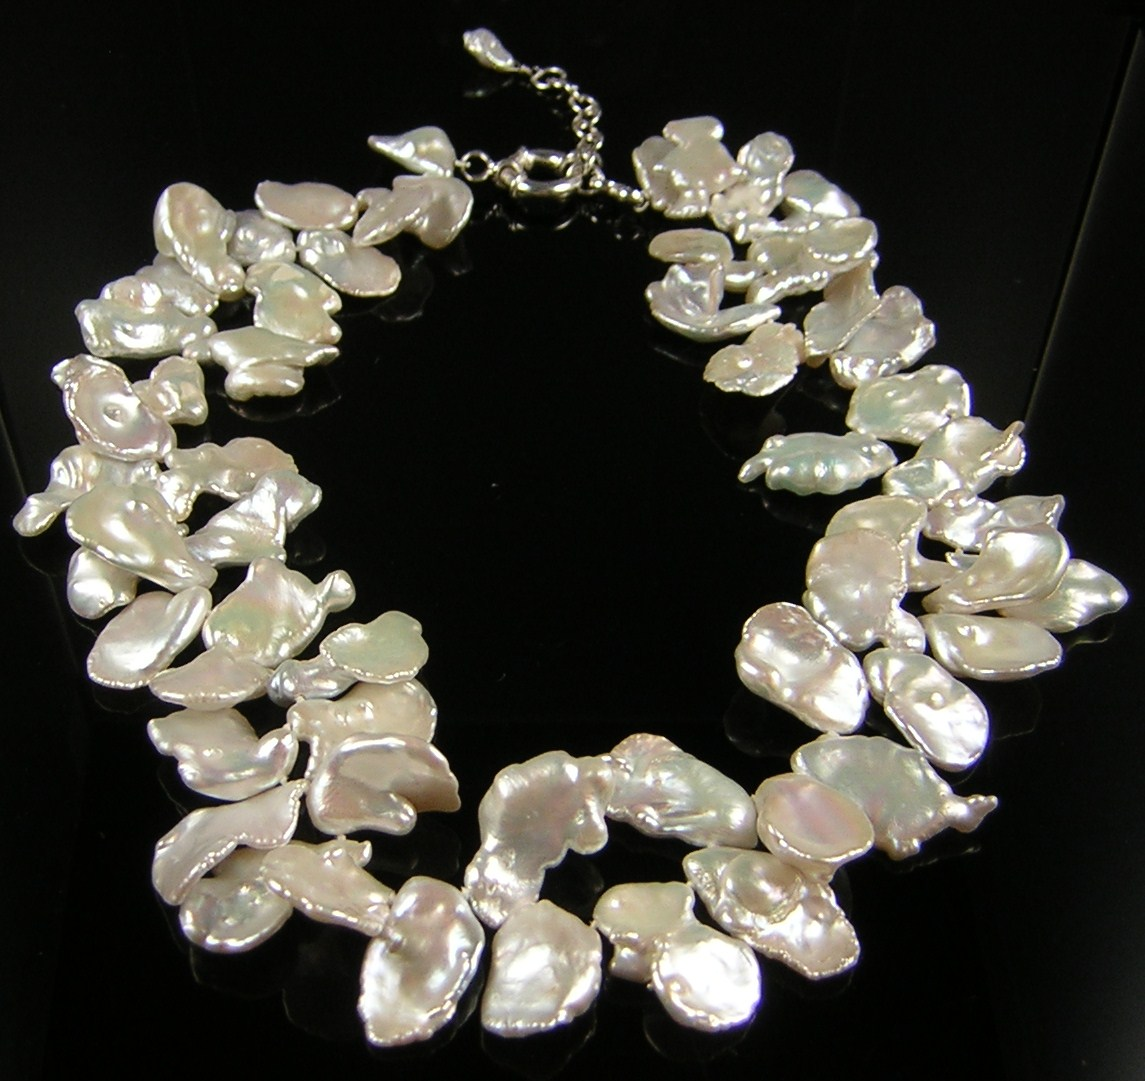 Pearls By Fox 20mm Keshi Poppy Pearl Necklace